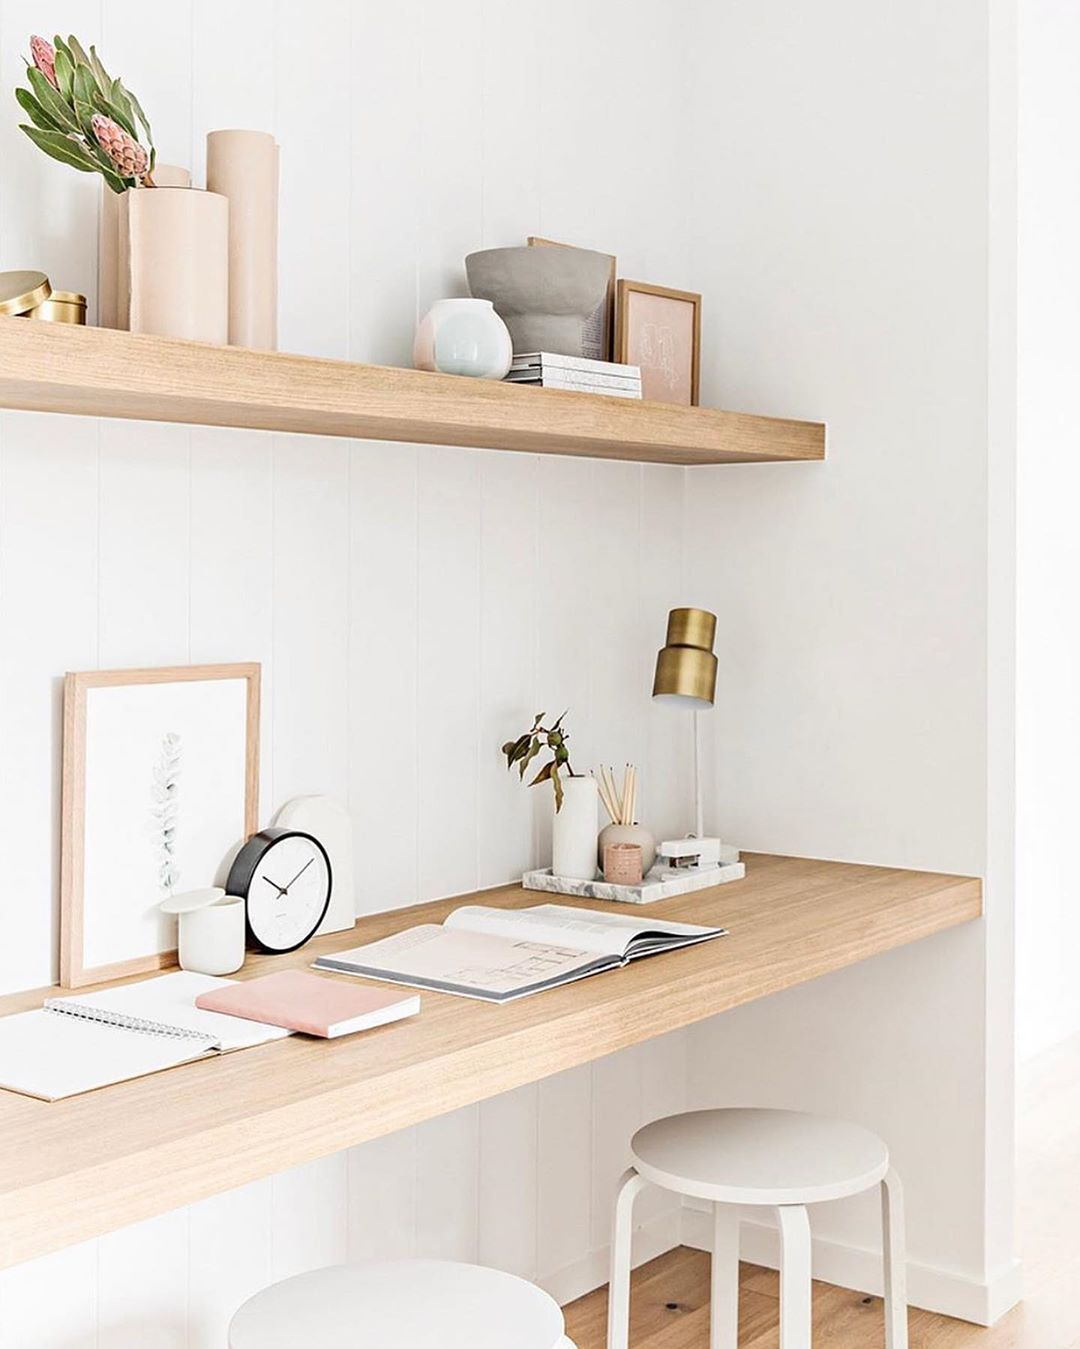 Ancorp Building Group On Instagram The Perfect Study Nook It Is Generous In Size With A Second S Office Interior Design Home Office Decor Home Office Design